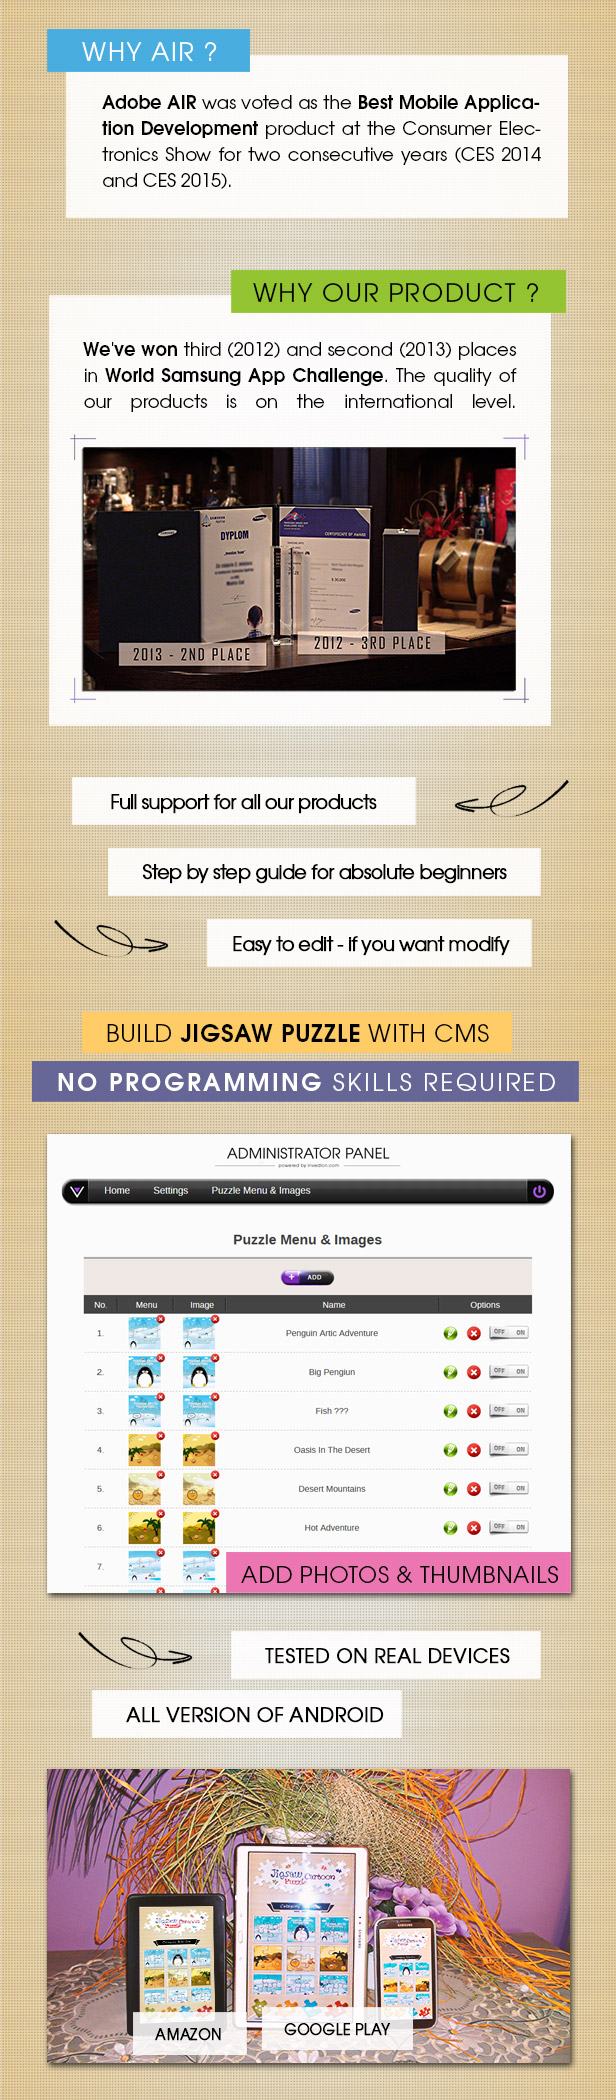 Jigsaw Cartoon Puzzle With CMS & AdMob - Android - 2